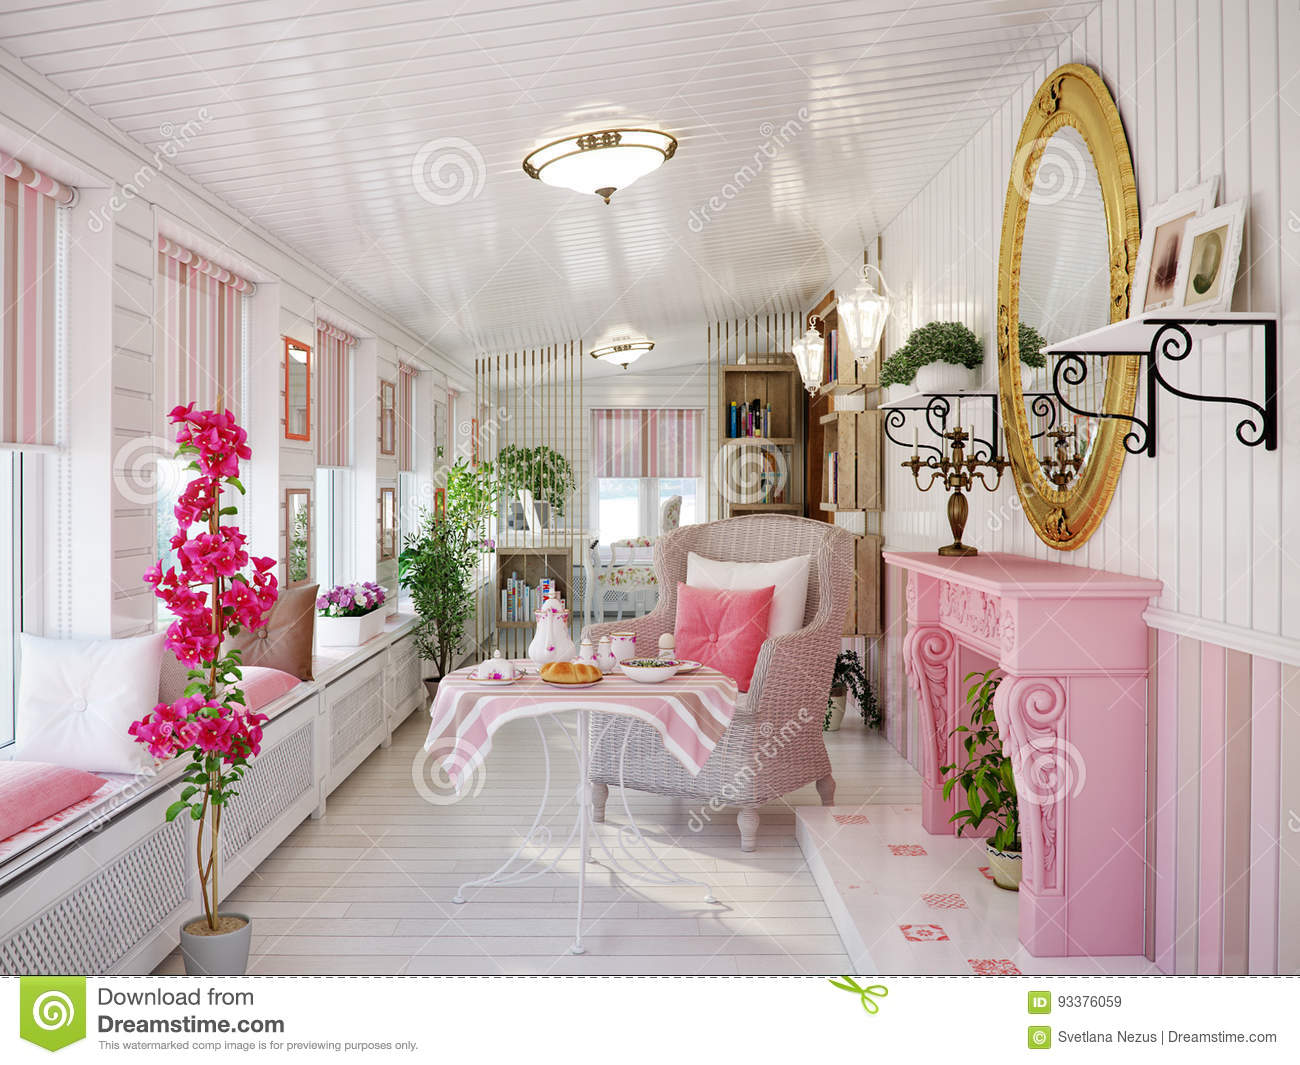 veranda living rooms room and dry classic traditional provence white pink colors stock rest interior design with wicker chairs fireplace wooden wall panels